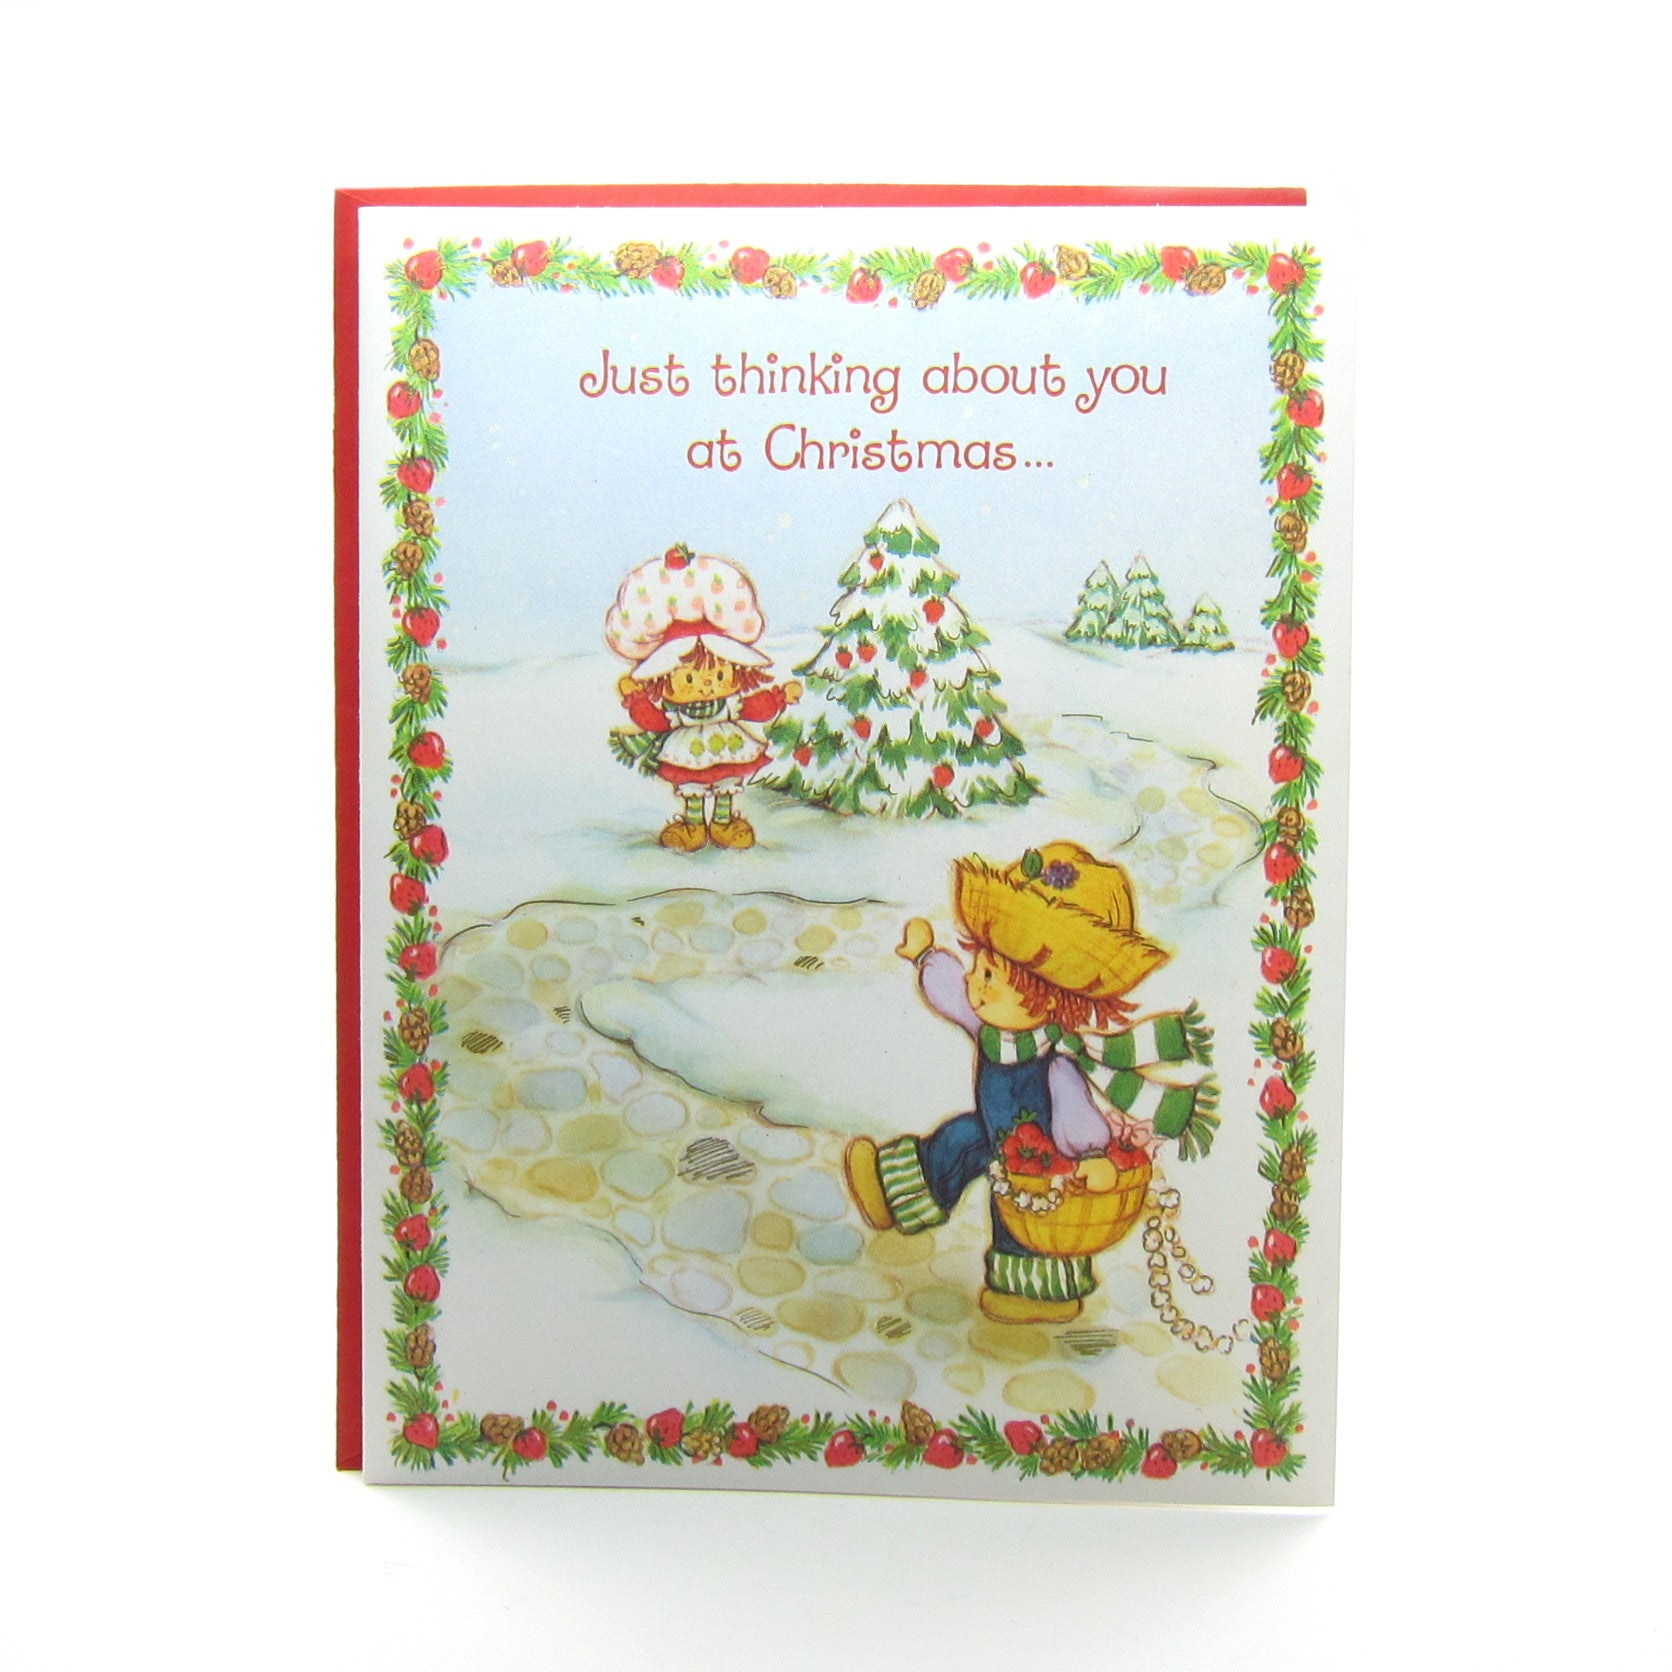 Strawberry Shortcake and Huckleberry Pie Christmas card